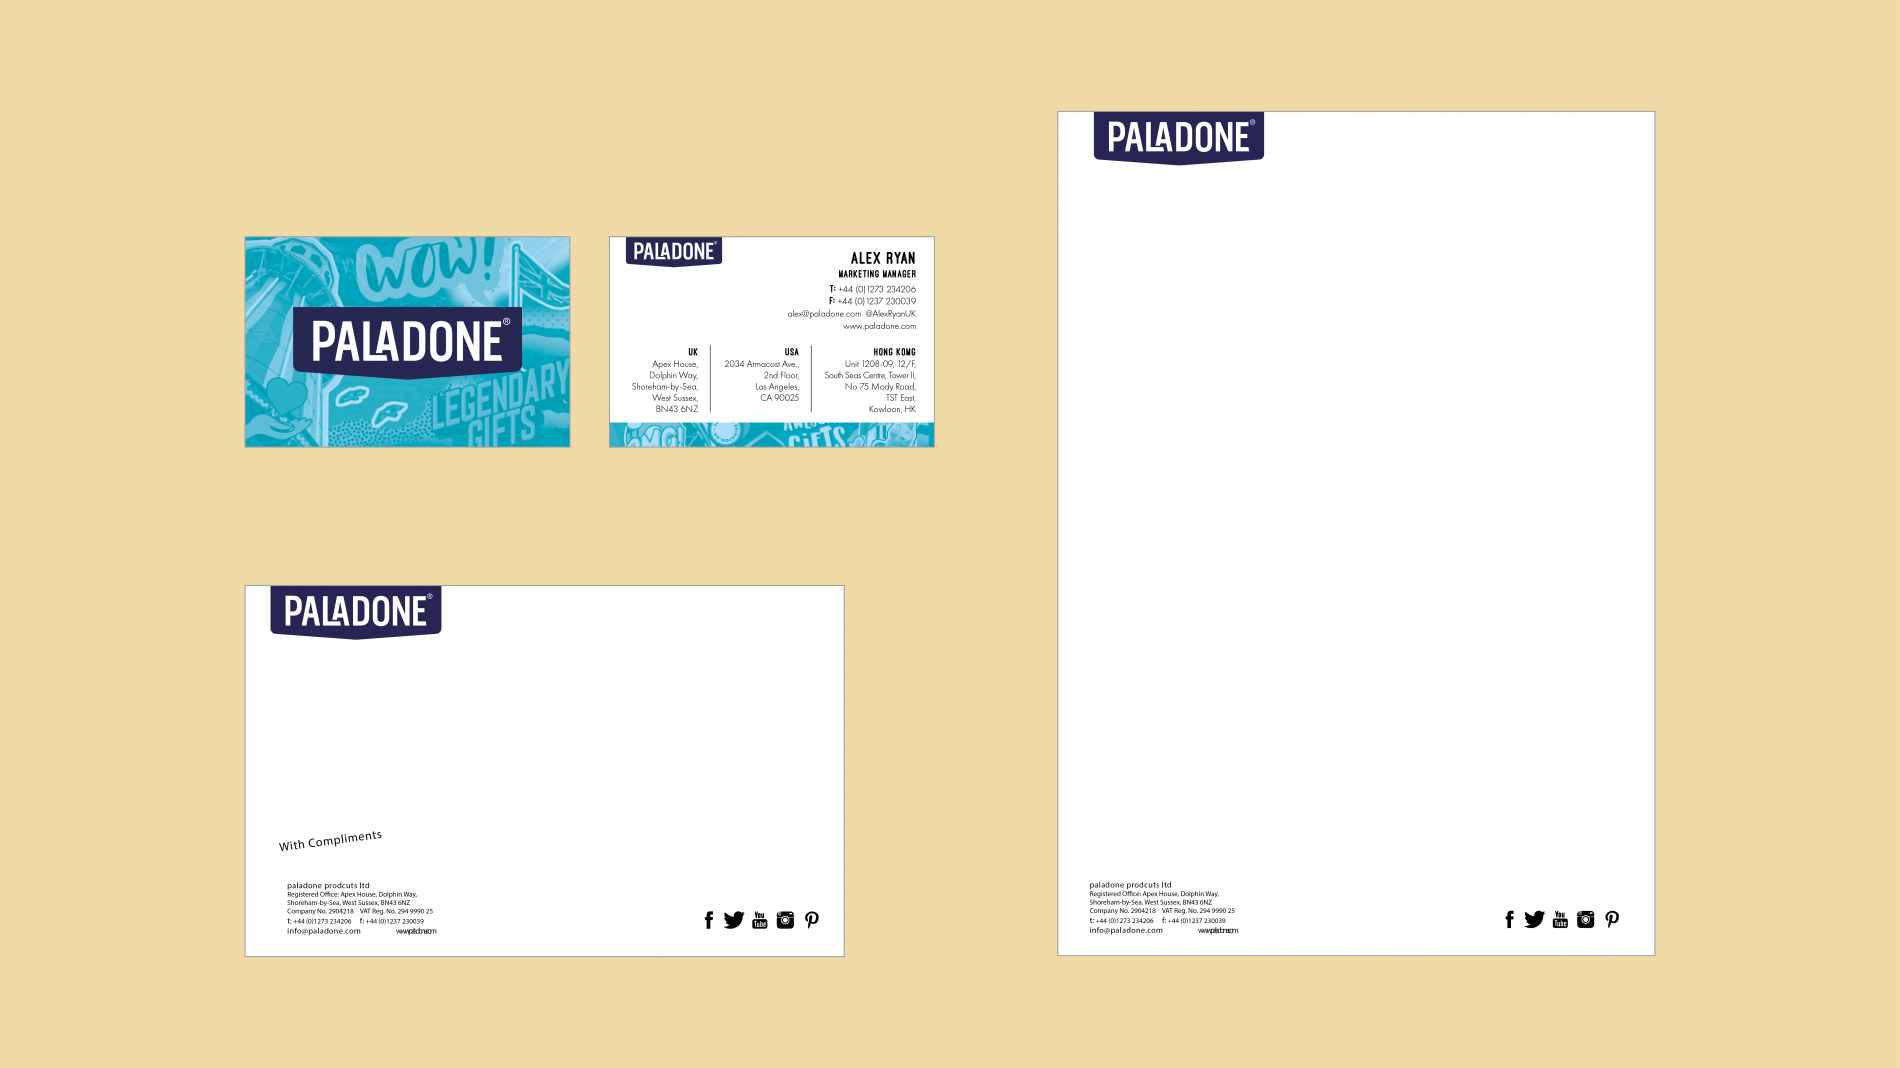 Paladone brand collateral